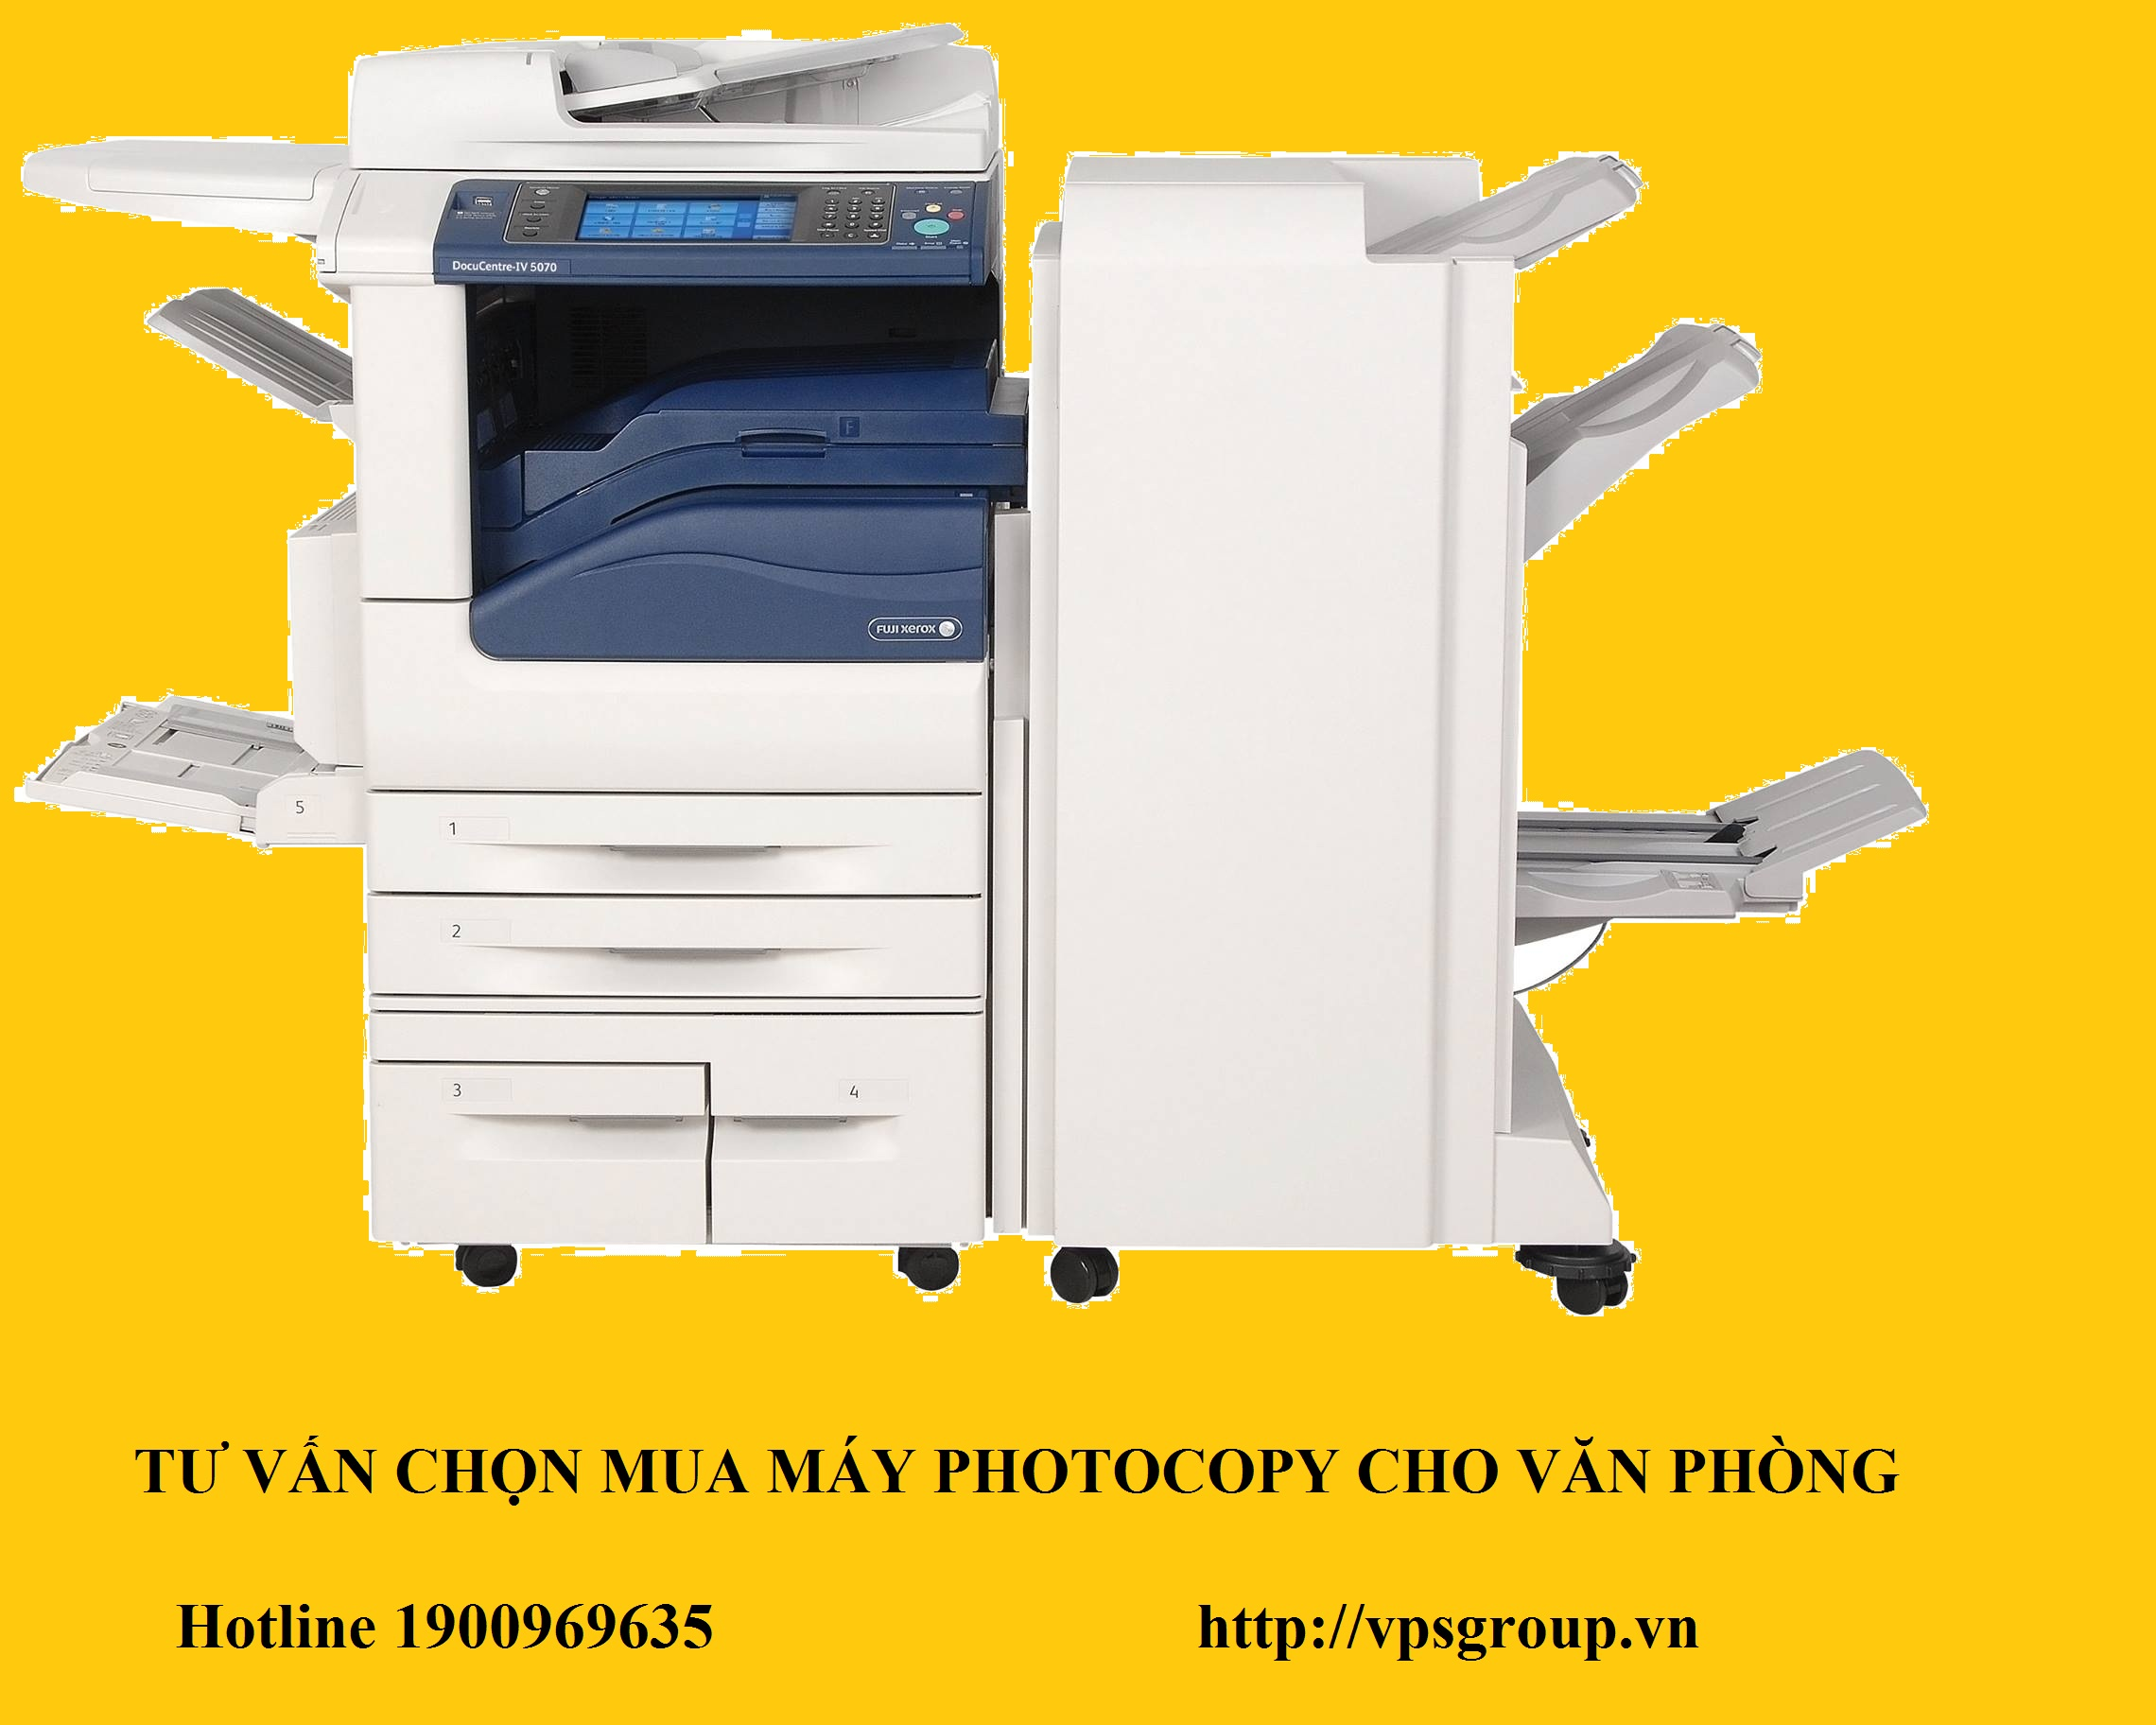 3-tieu-chi-chon-may-photocopy-ban-can-biet